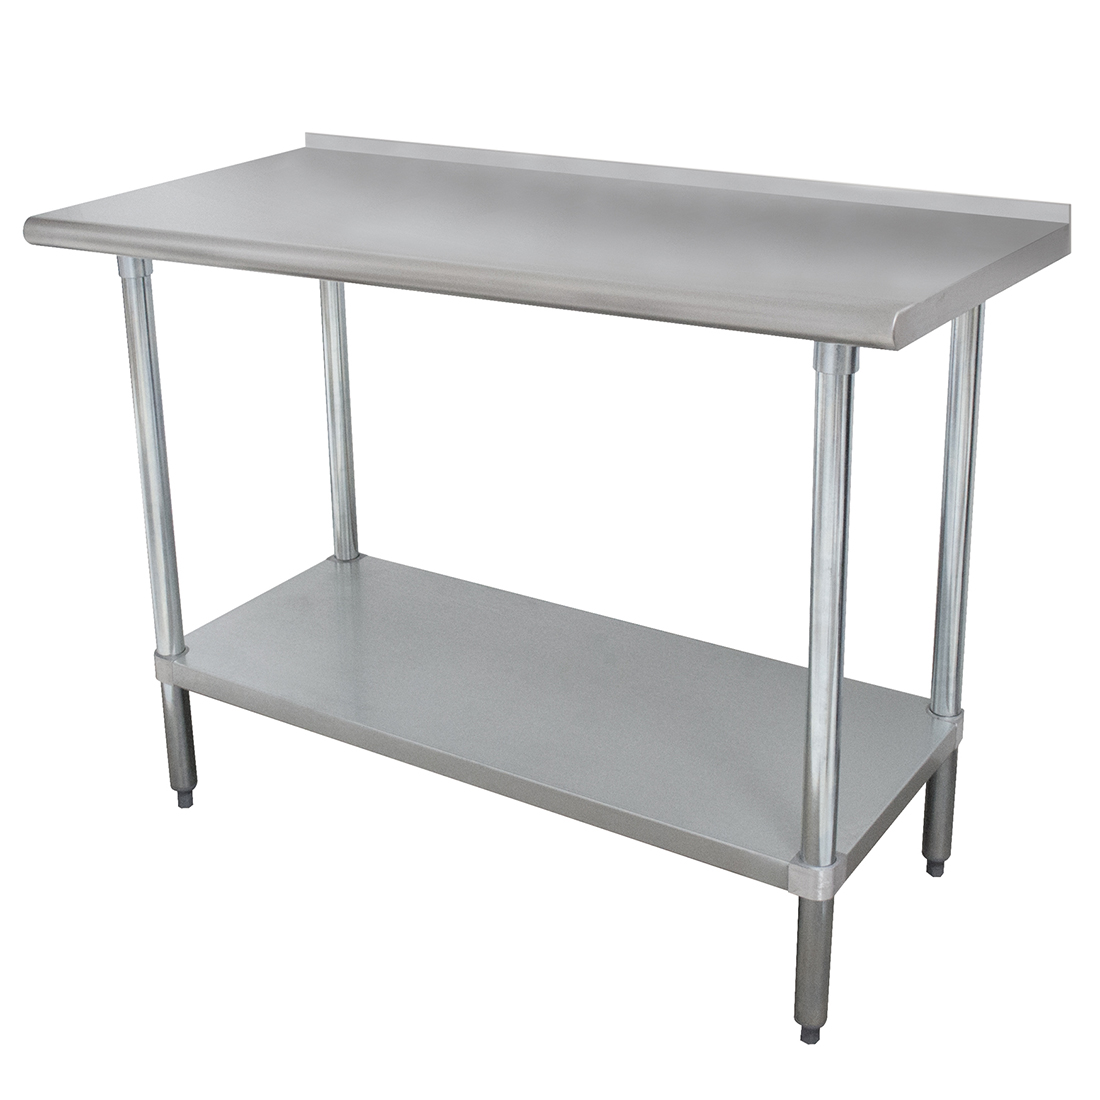 Advance Tabco FMG-3012 work table, 133